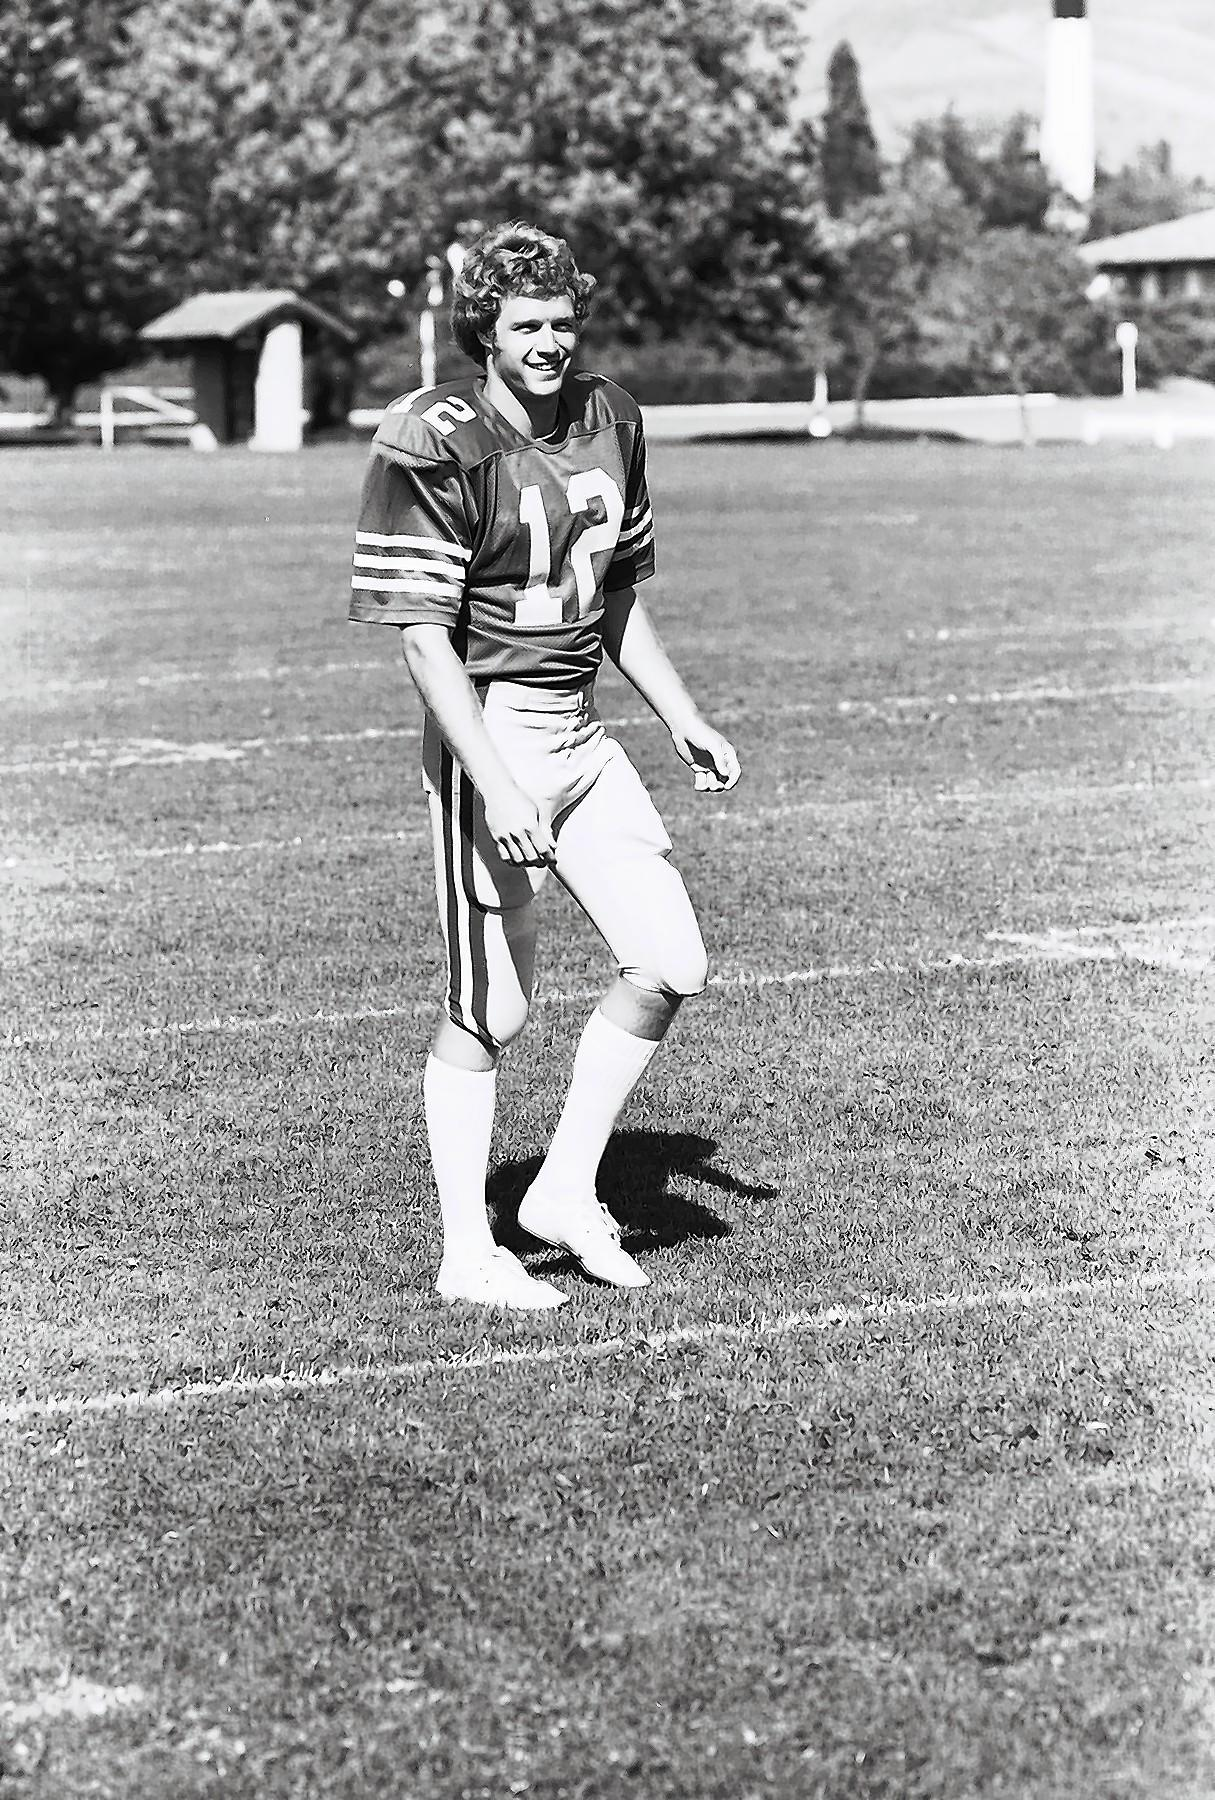 Joe Roth was a star quarterback for Cal. His life was cut short because of melanoma.